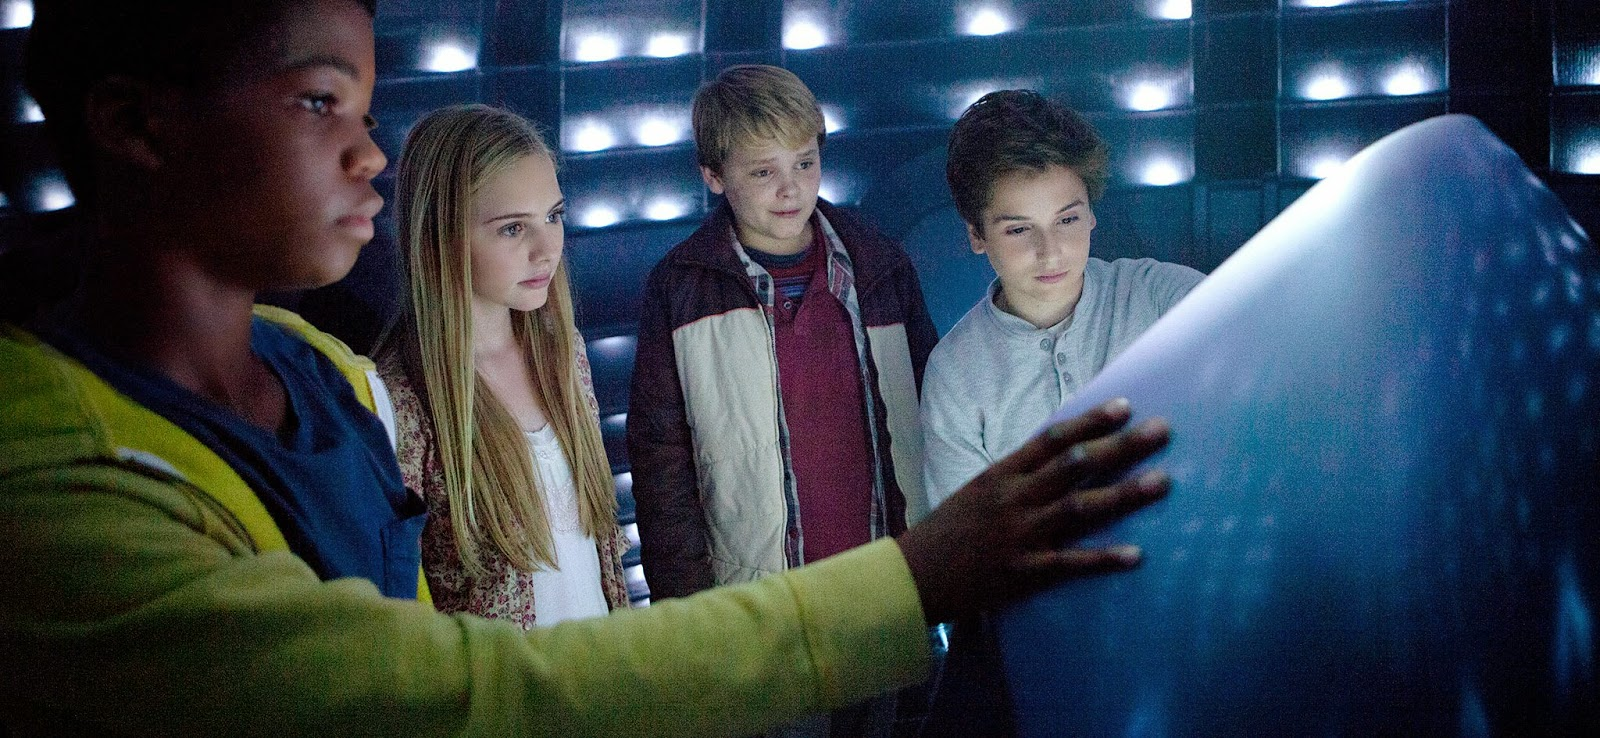 Assista ao novo trailer da ficção found footage Earth to Echo, de Dave Green